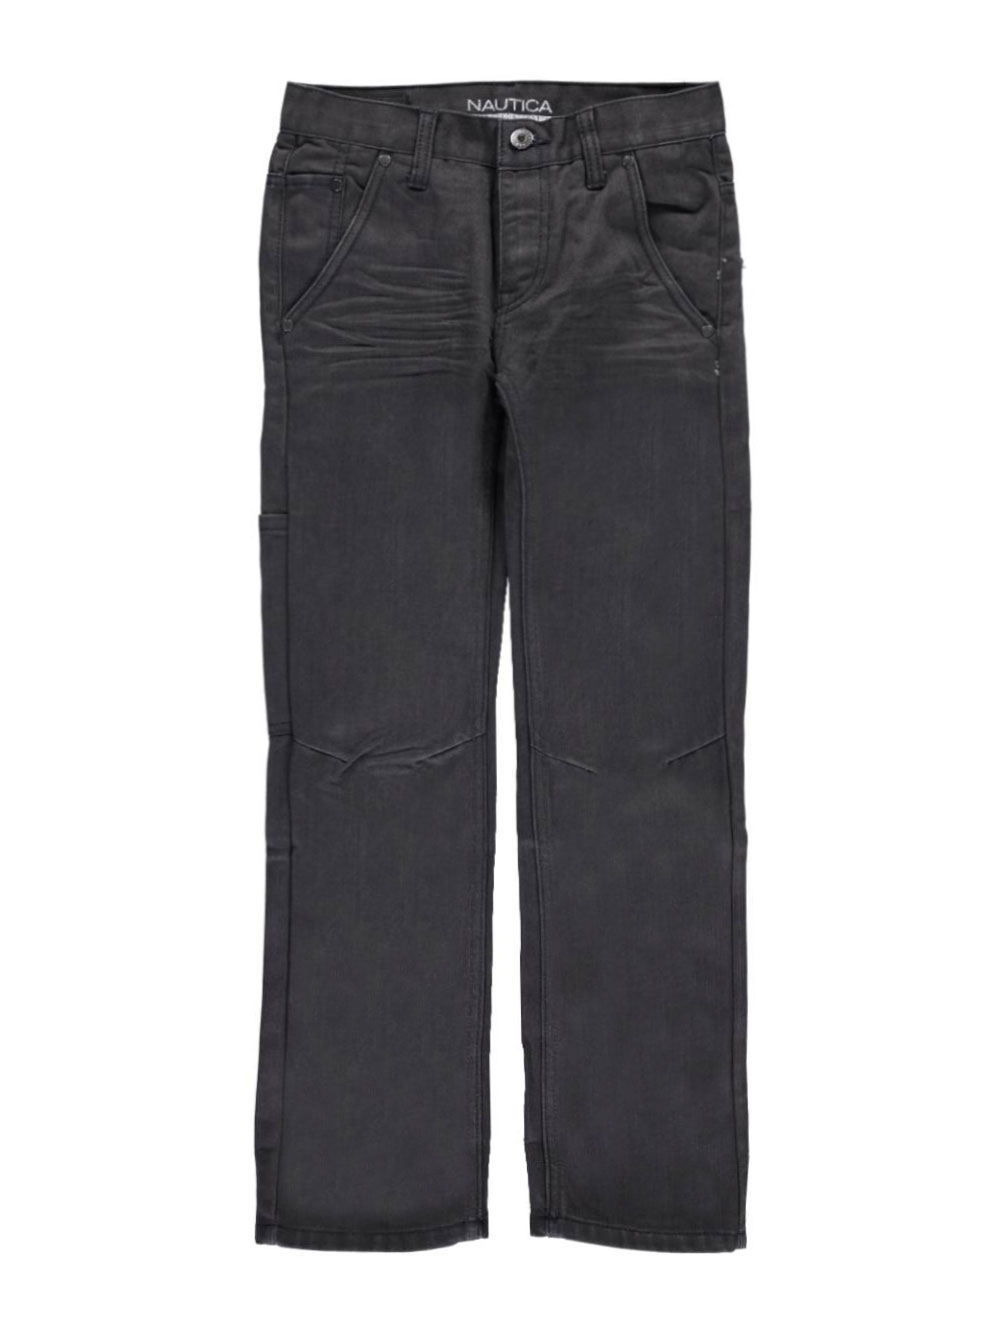 Image of Nautica Big Boys McGuinness Straight Fit Jeans Sizes 8  20